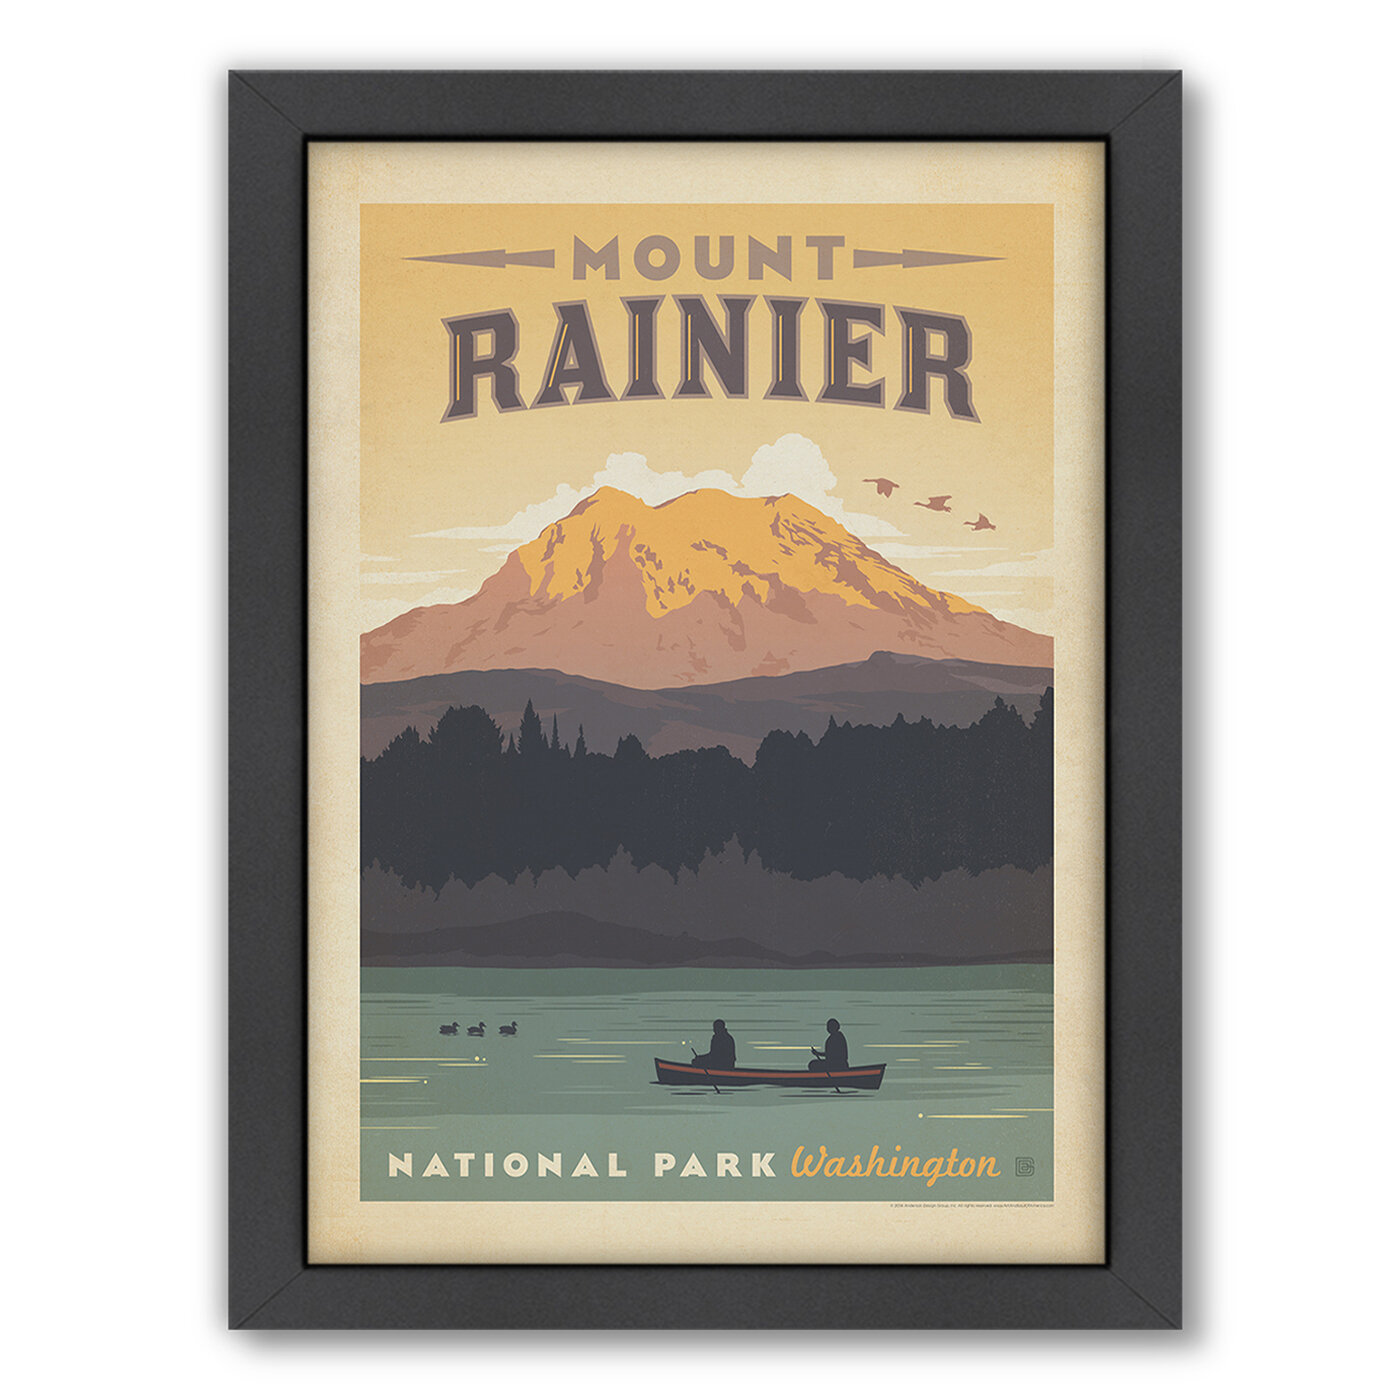 East Urban Home National Park Mount Rainier Framed Vintage Advertisement By Anderson Design Group Reviews Wayfair